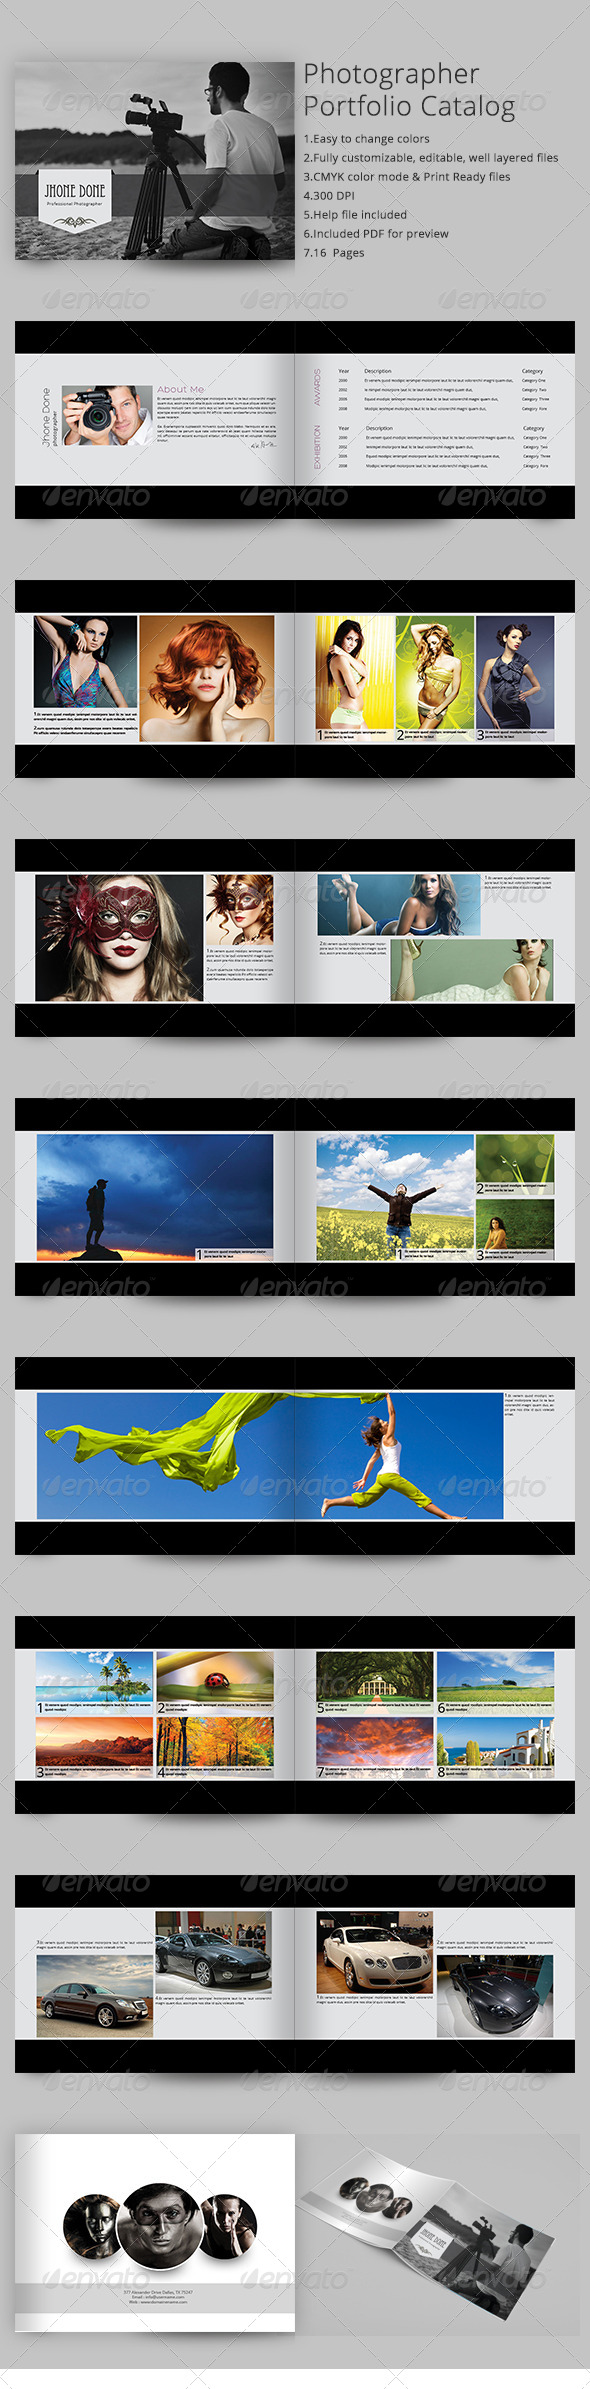 Photographer Portfolio Catalog - Portfolio Brochures